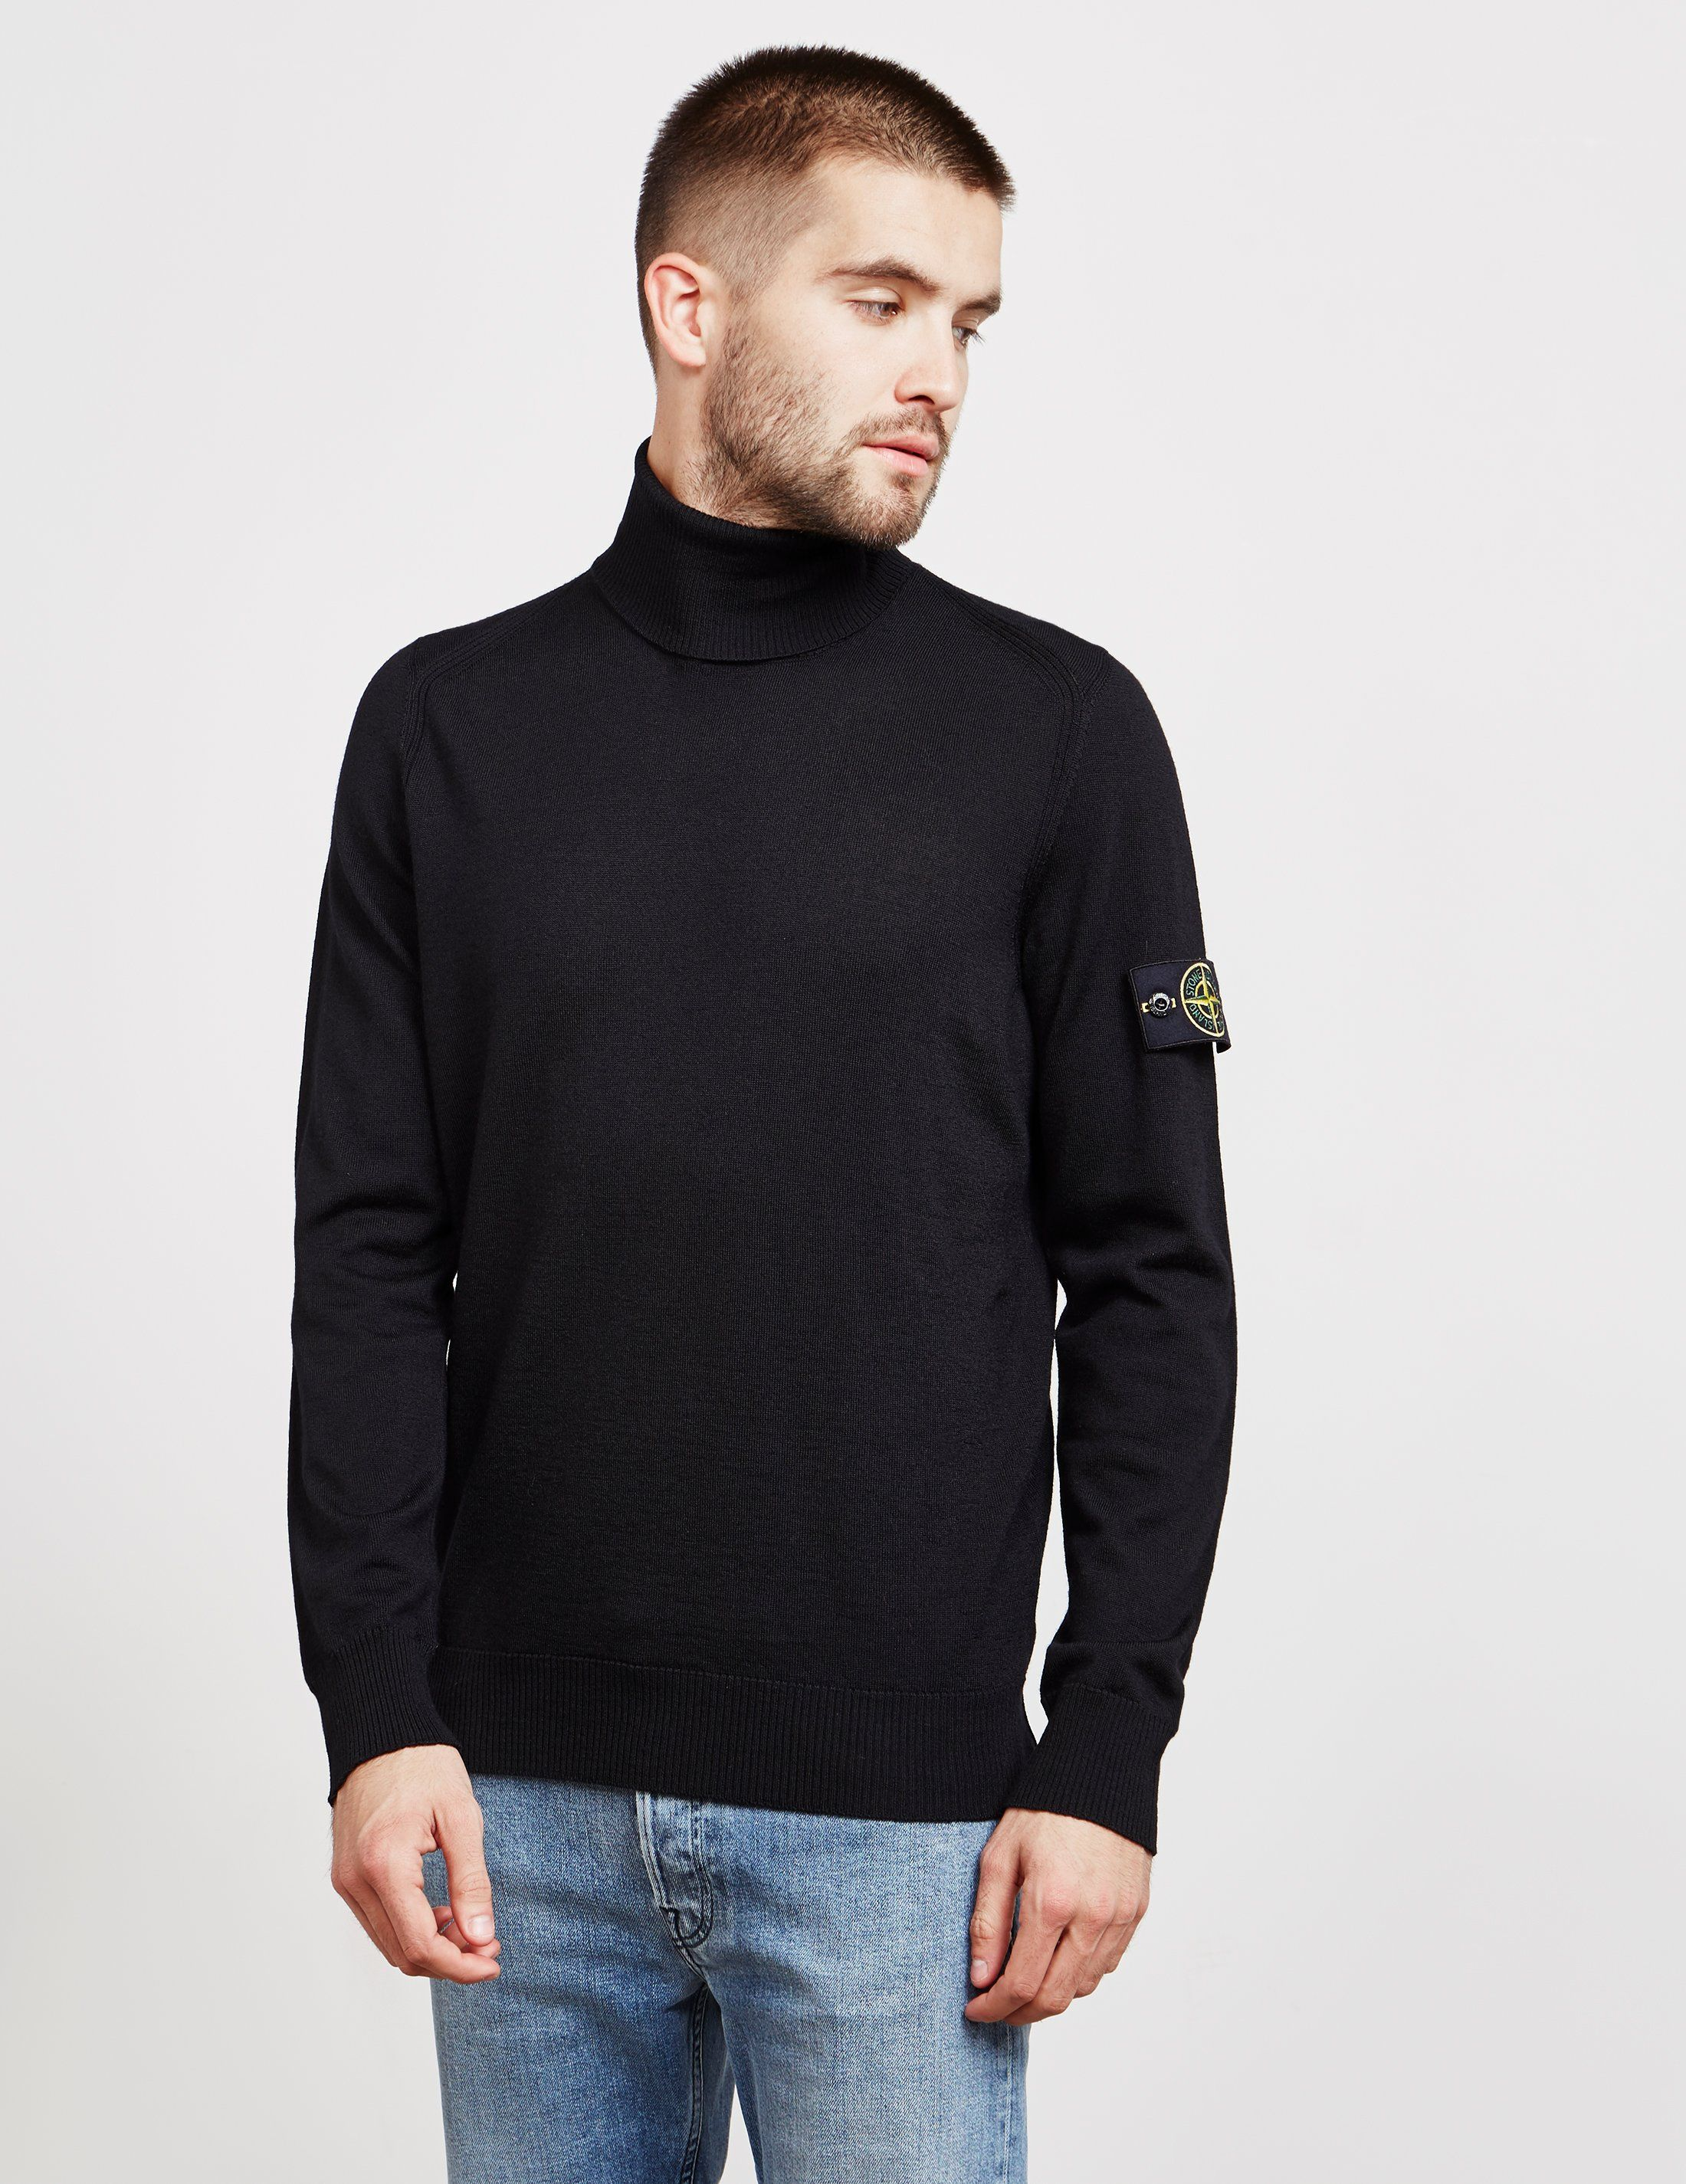 Stone Island Roll Neck Knit Jumper - Online Exclusive